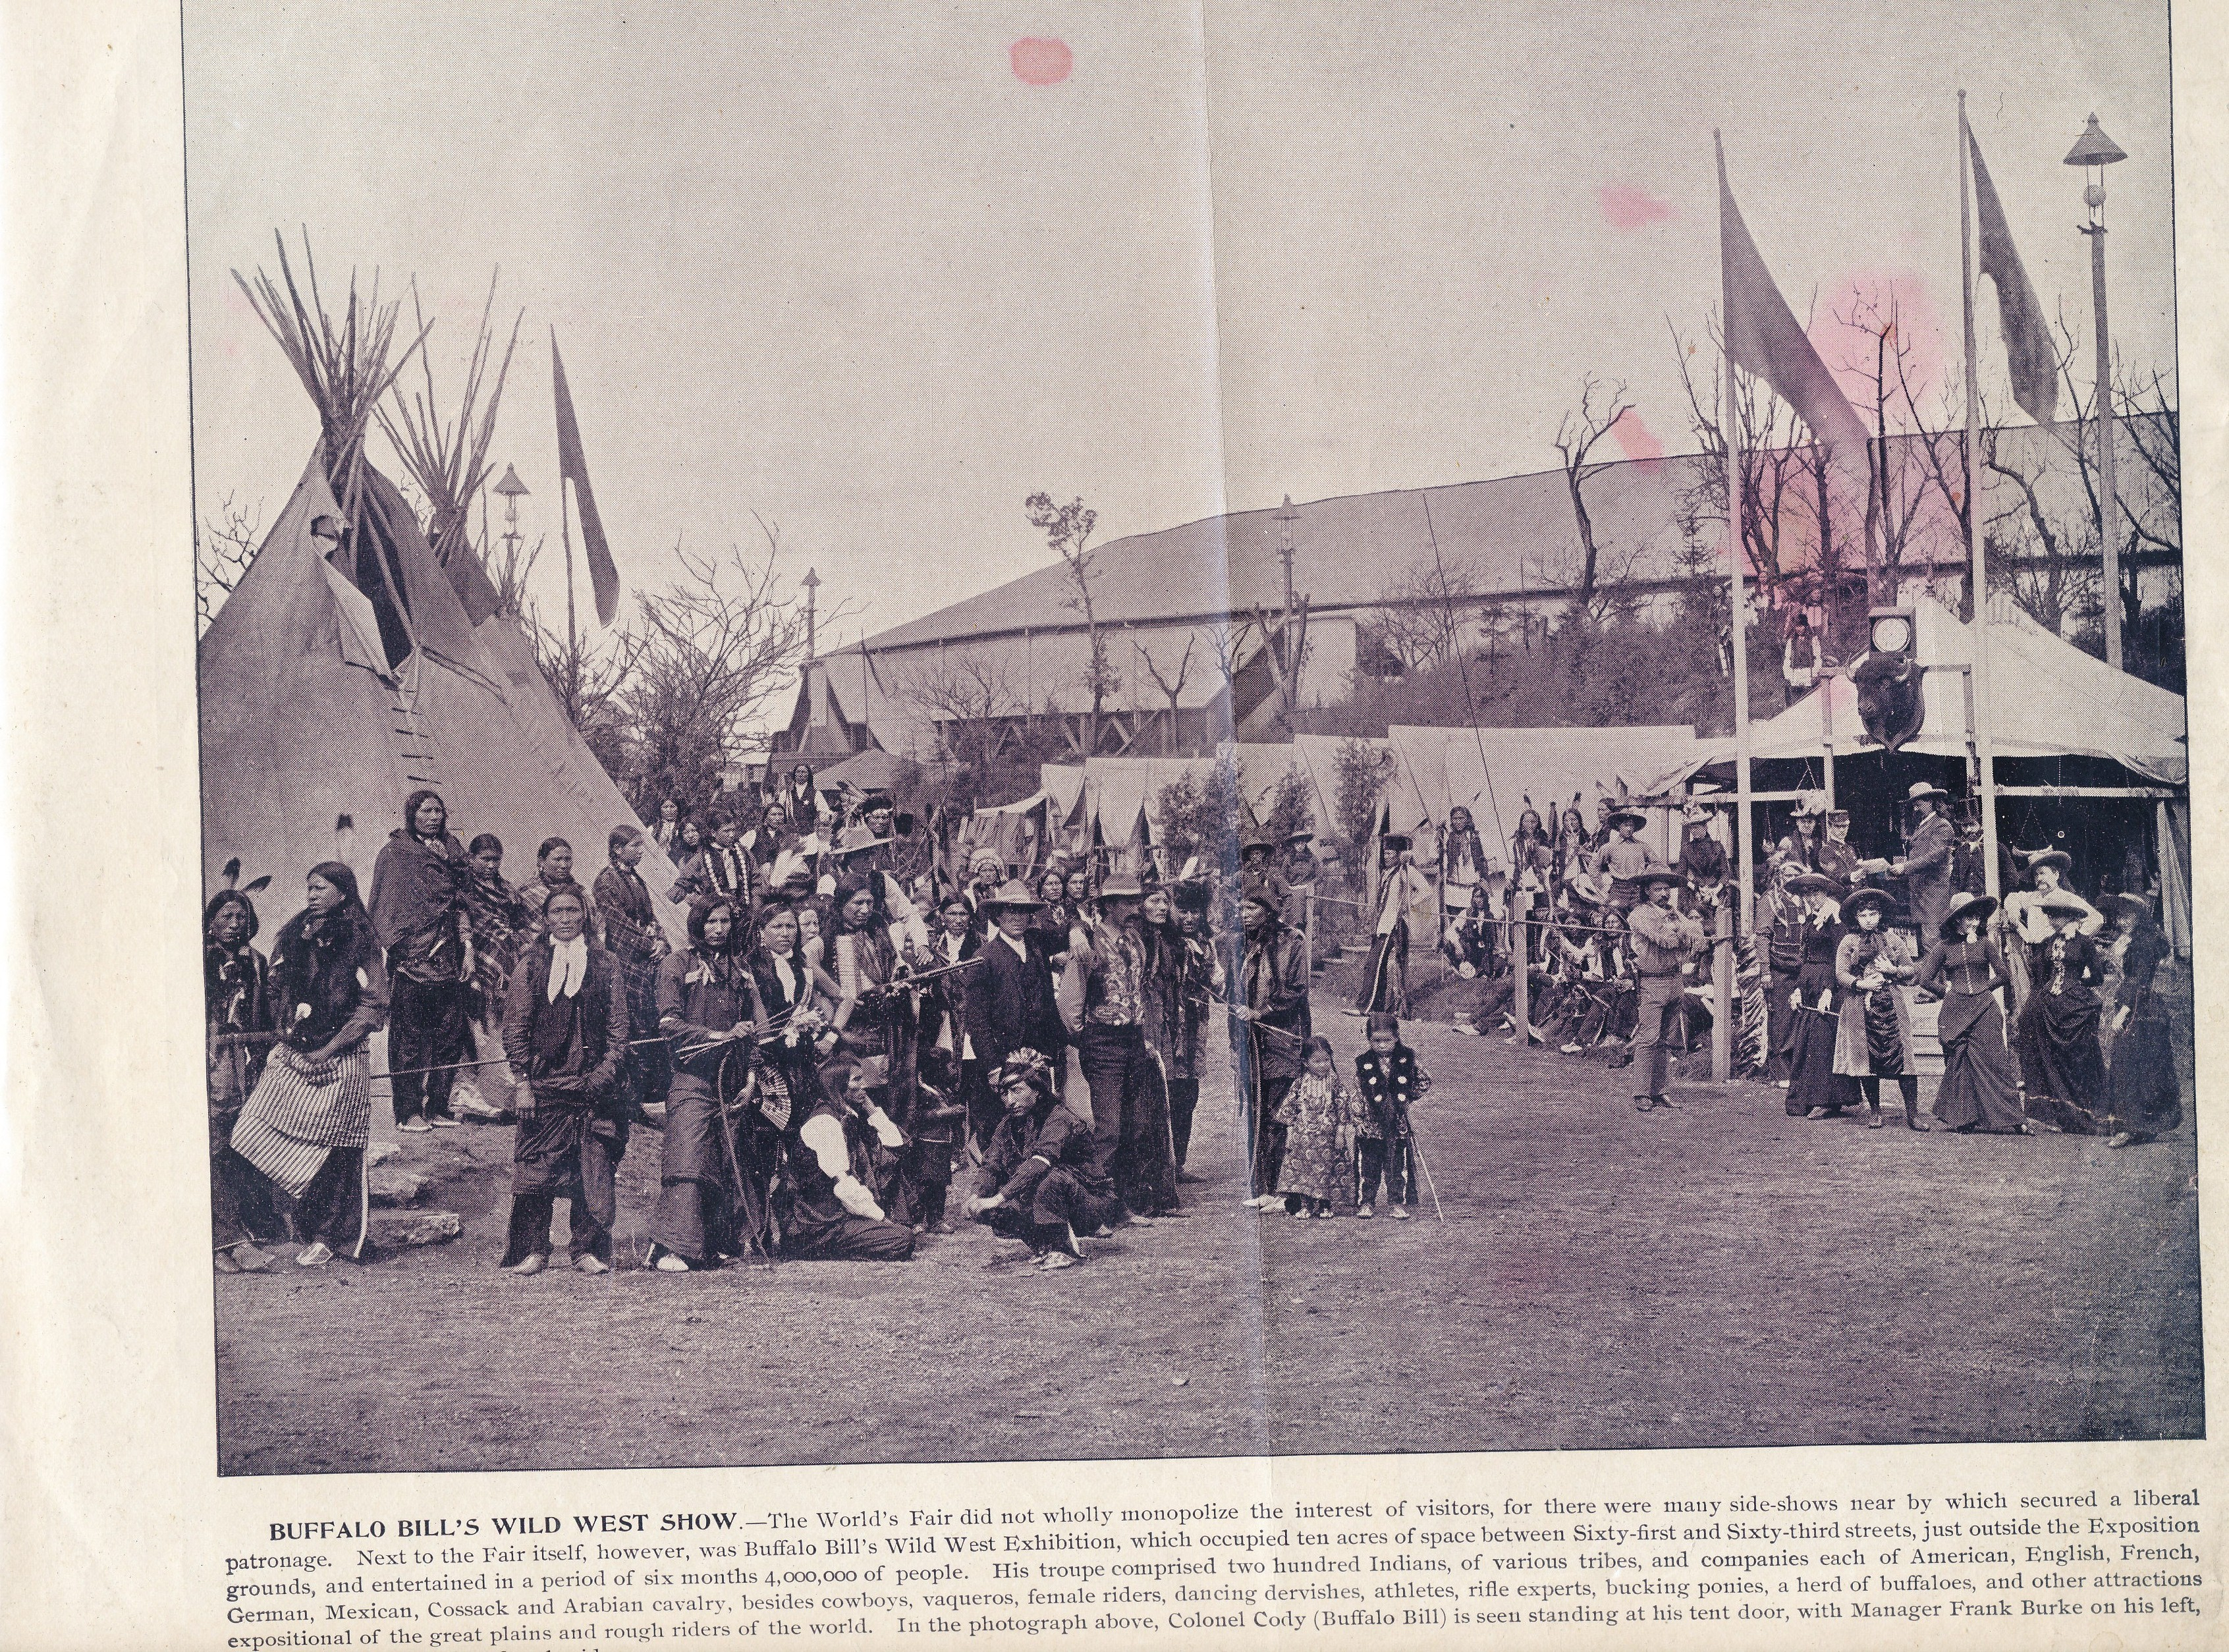 Buffalo Bills Wild West Photo 1893 Worlds Fair